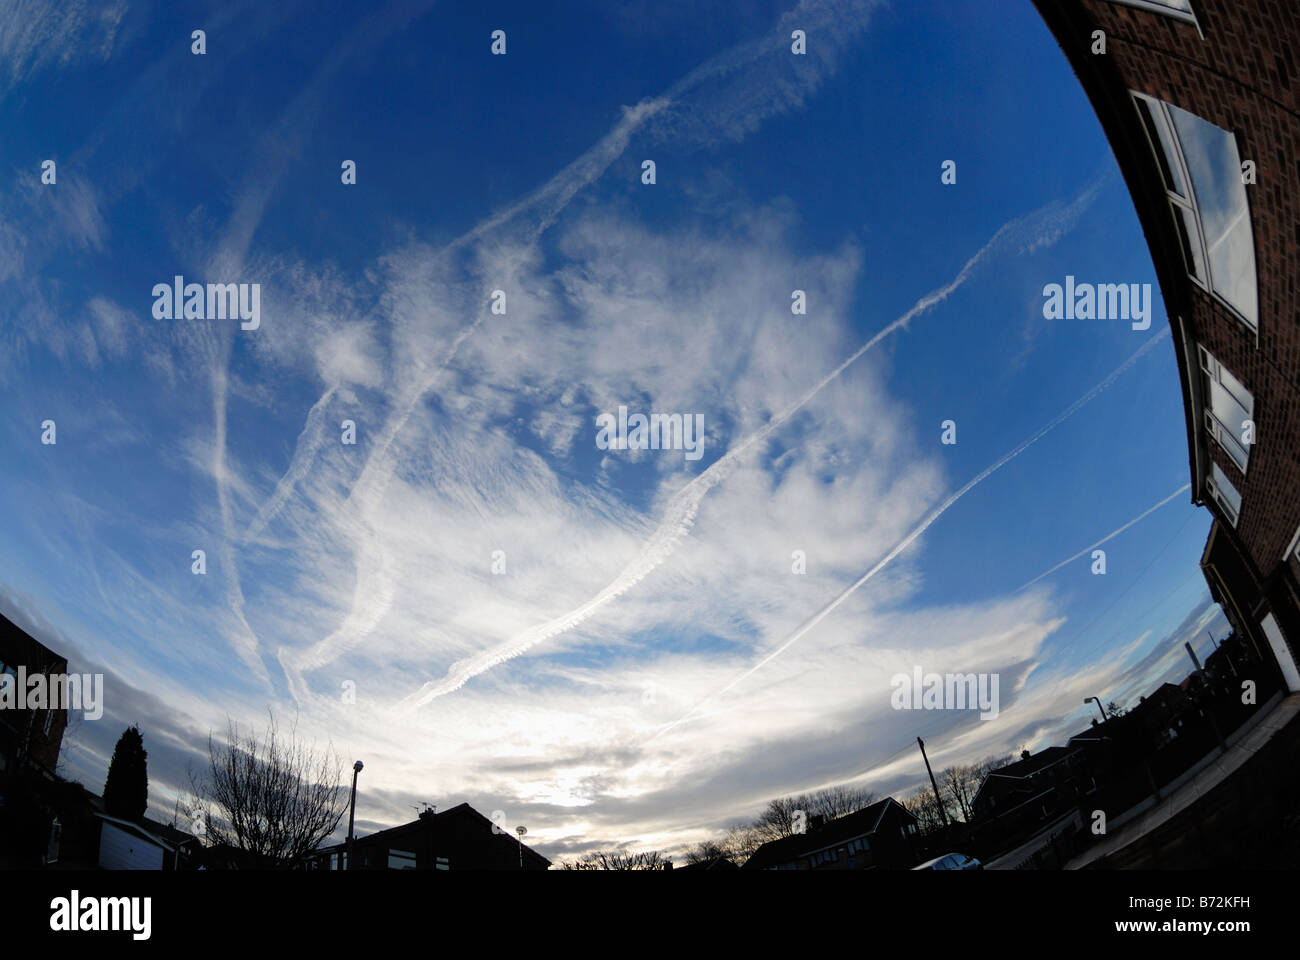 vapor trails or chemtrails from jets in sky - Stock Image